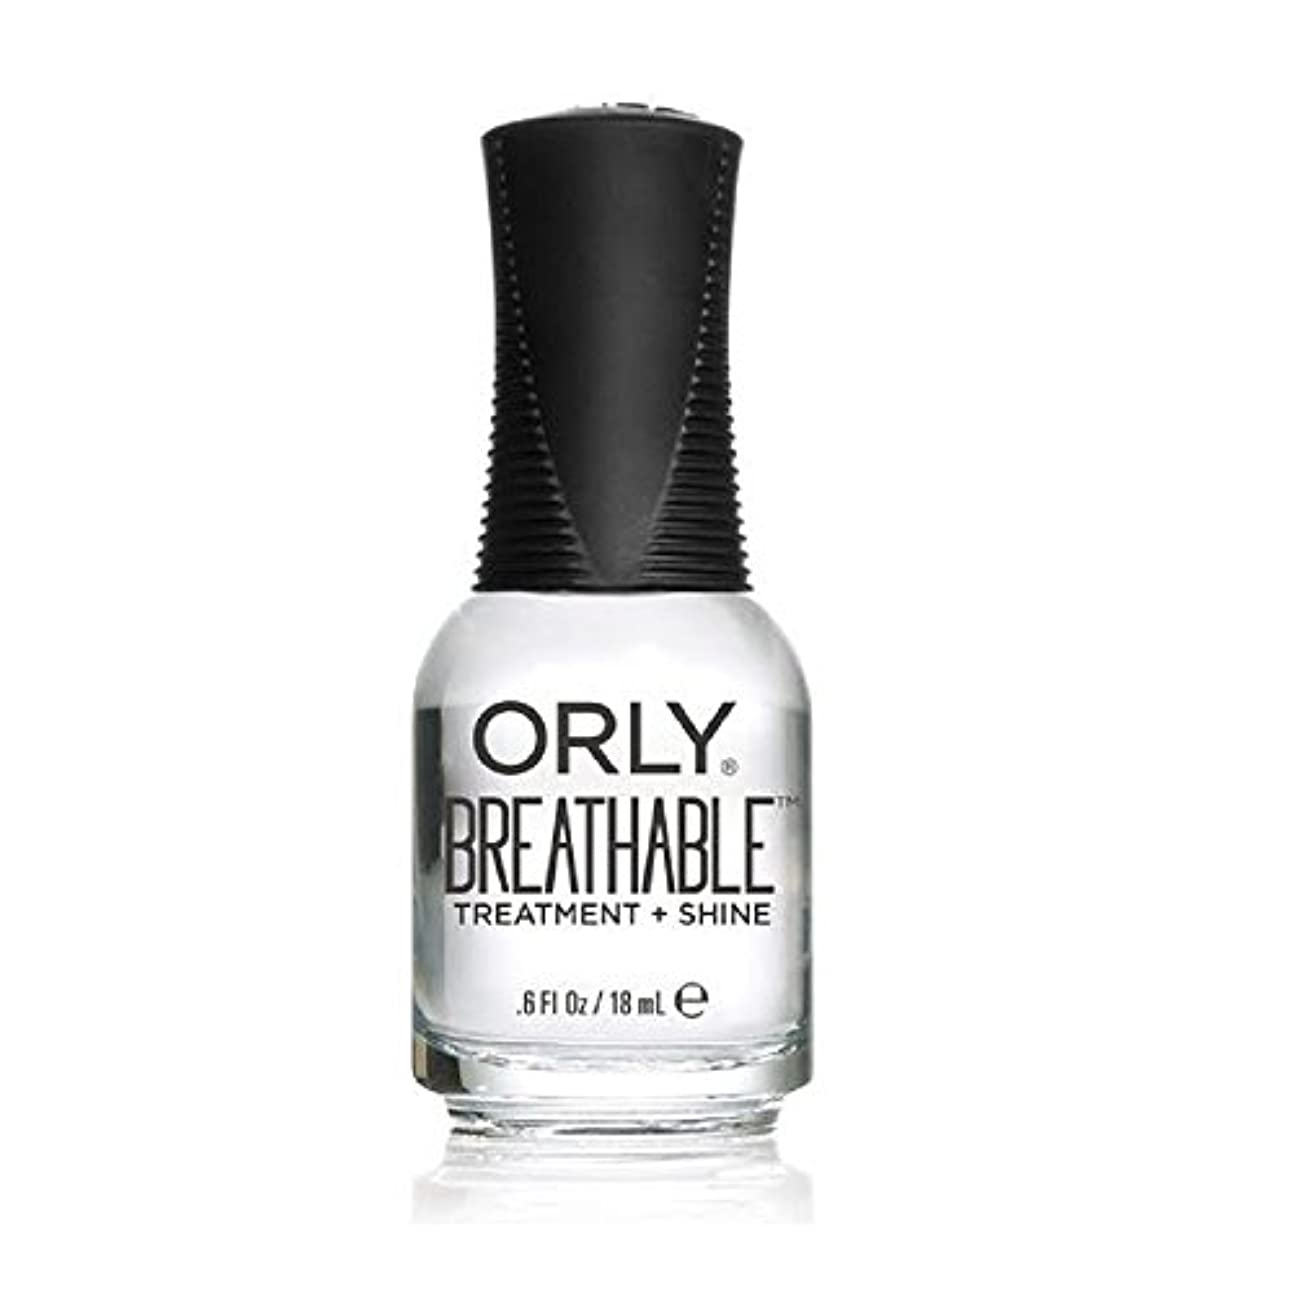 Orly Breathable Treatment + Color Nail Lacquer - Treatment + Shine - 0.6oz/18ml